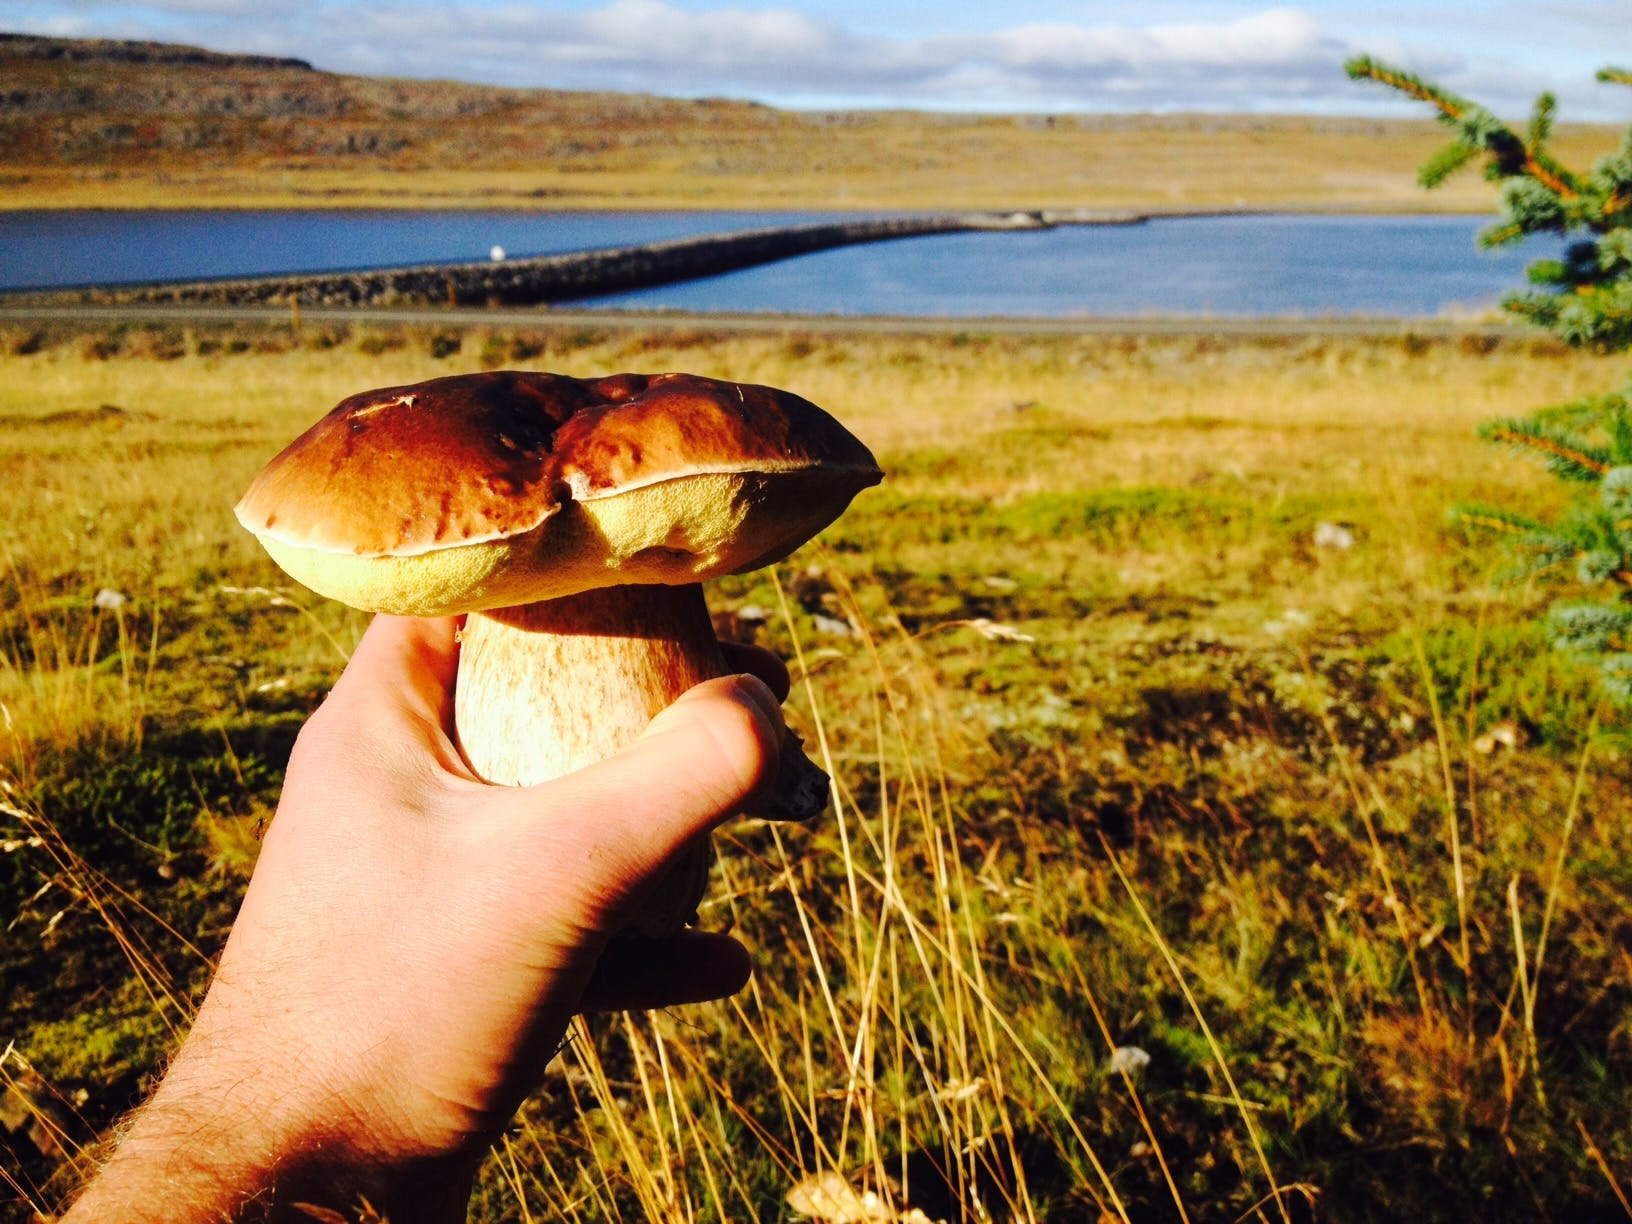 Icelandic Magic Mushrooms Got Me Into Foraging